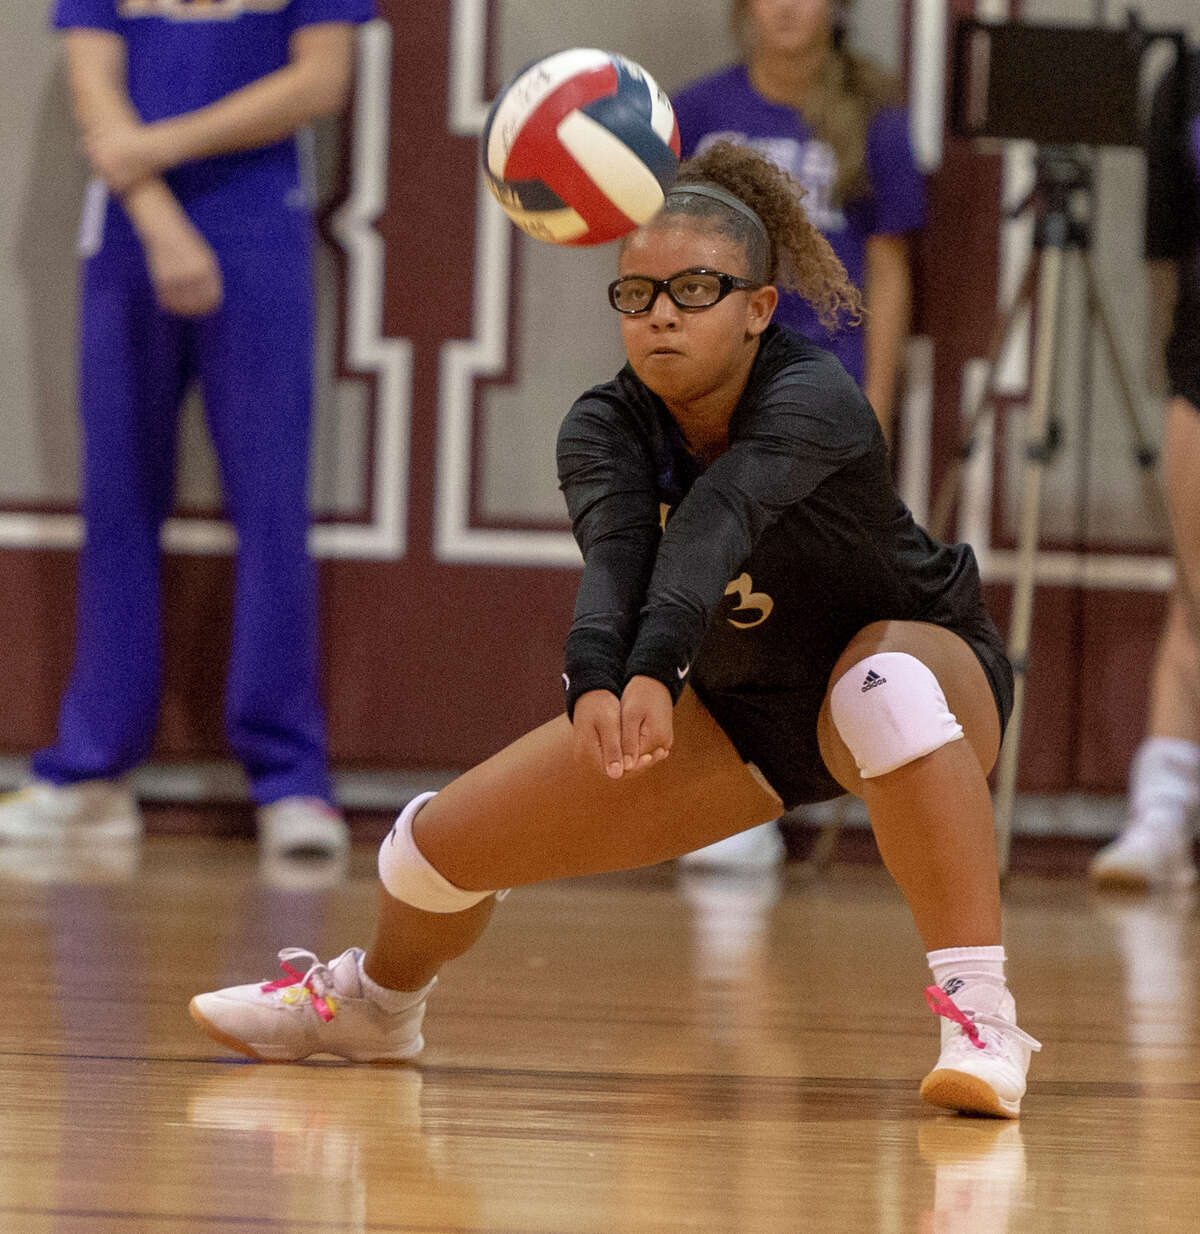 Midland High's Demmi Anders digs the ball Friday, Oct. 4, 2019 at Lee High School gym.